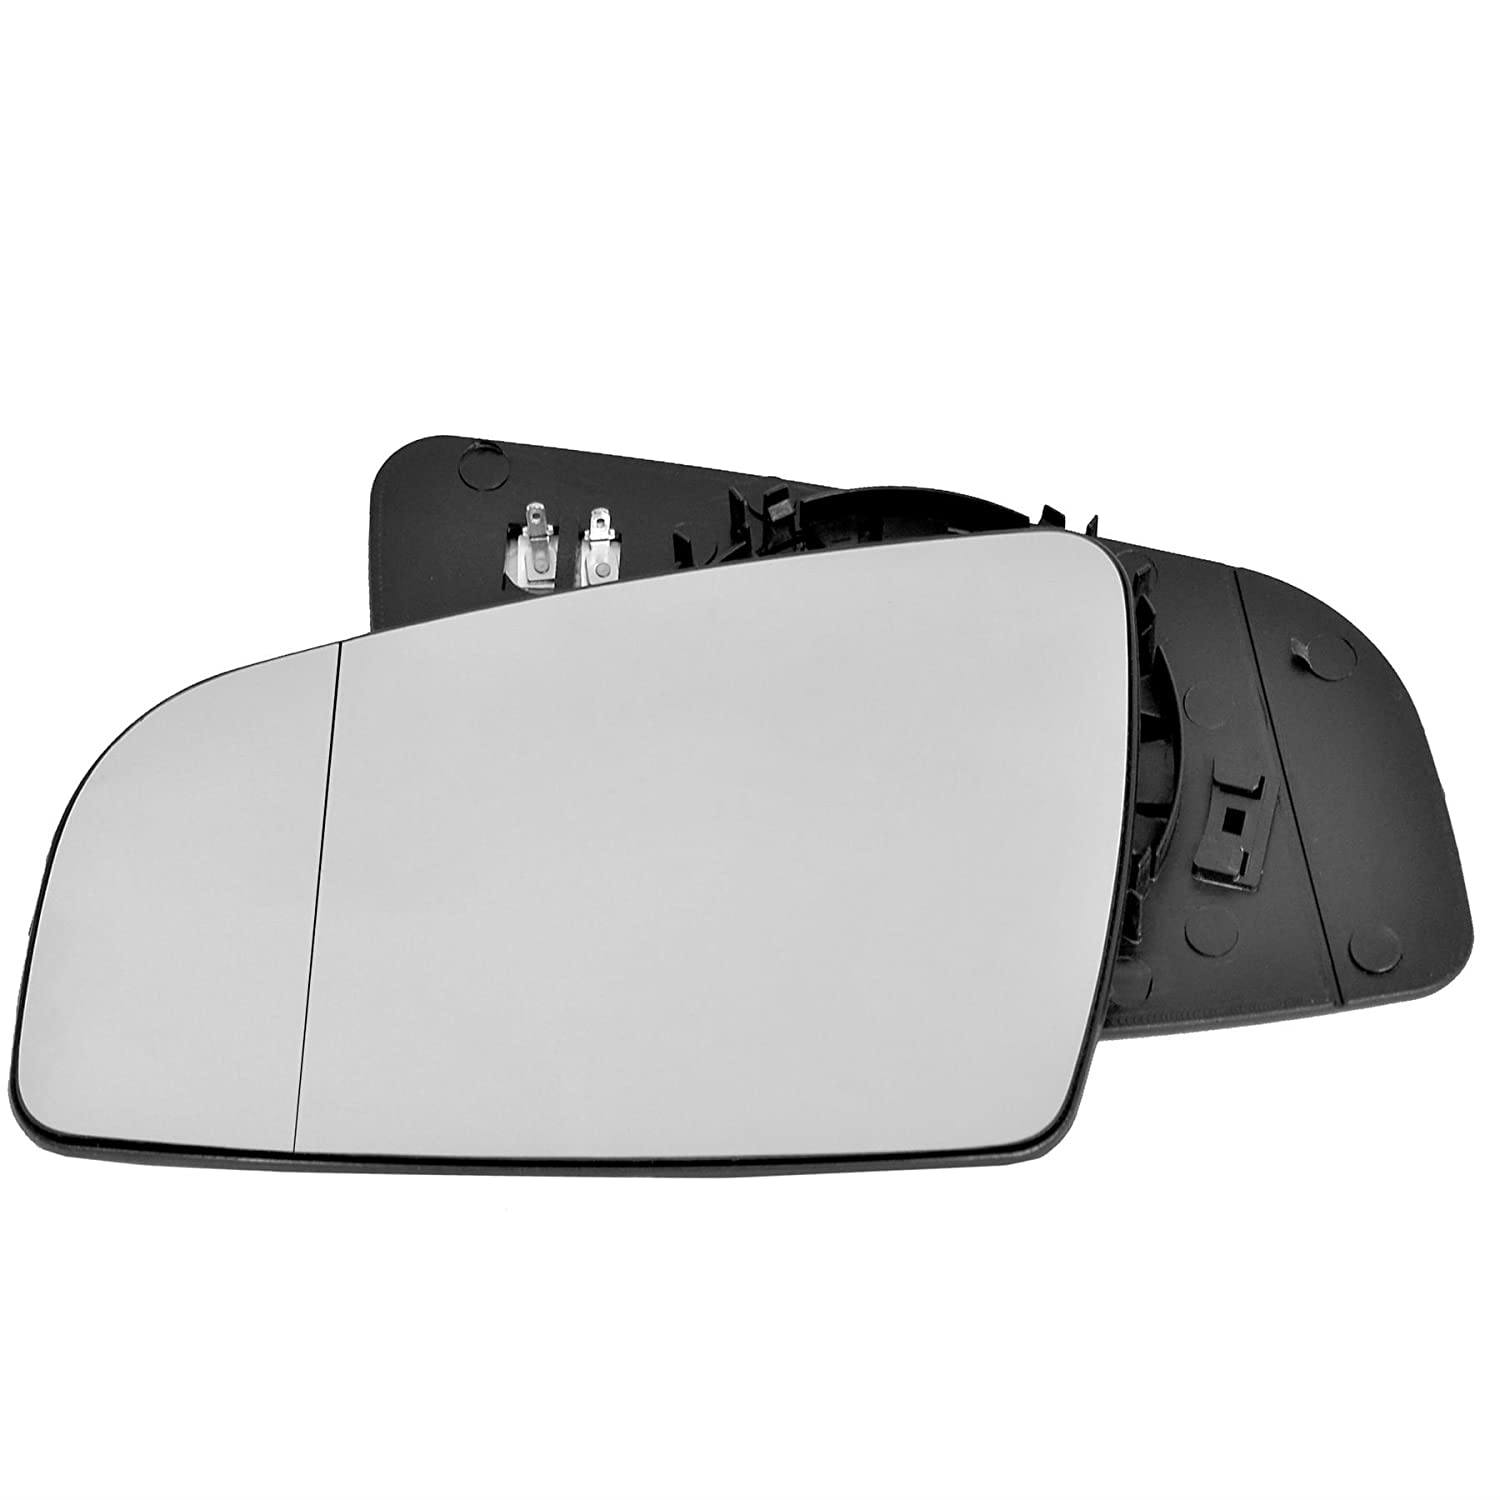 Passenger left hand side wing door mirror convex glass heated with backing plate